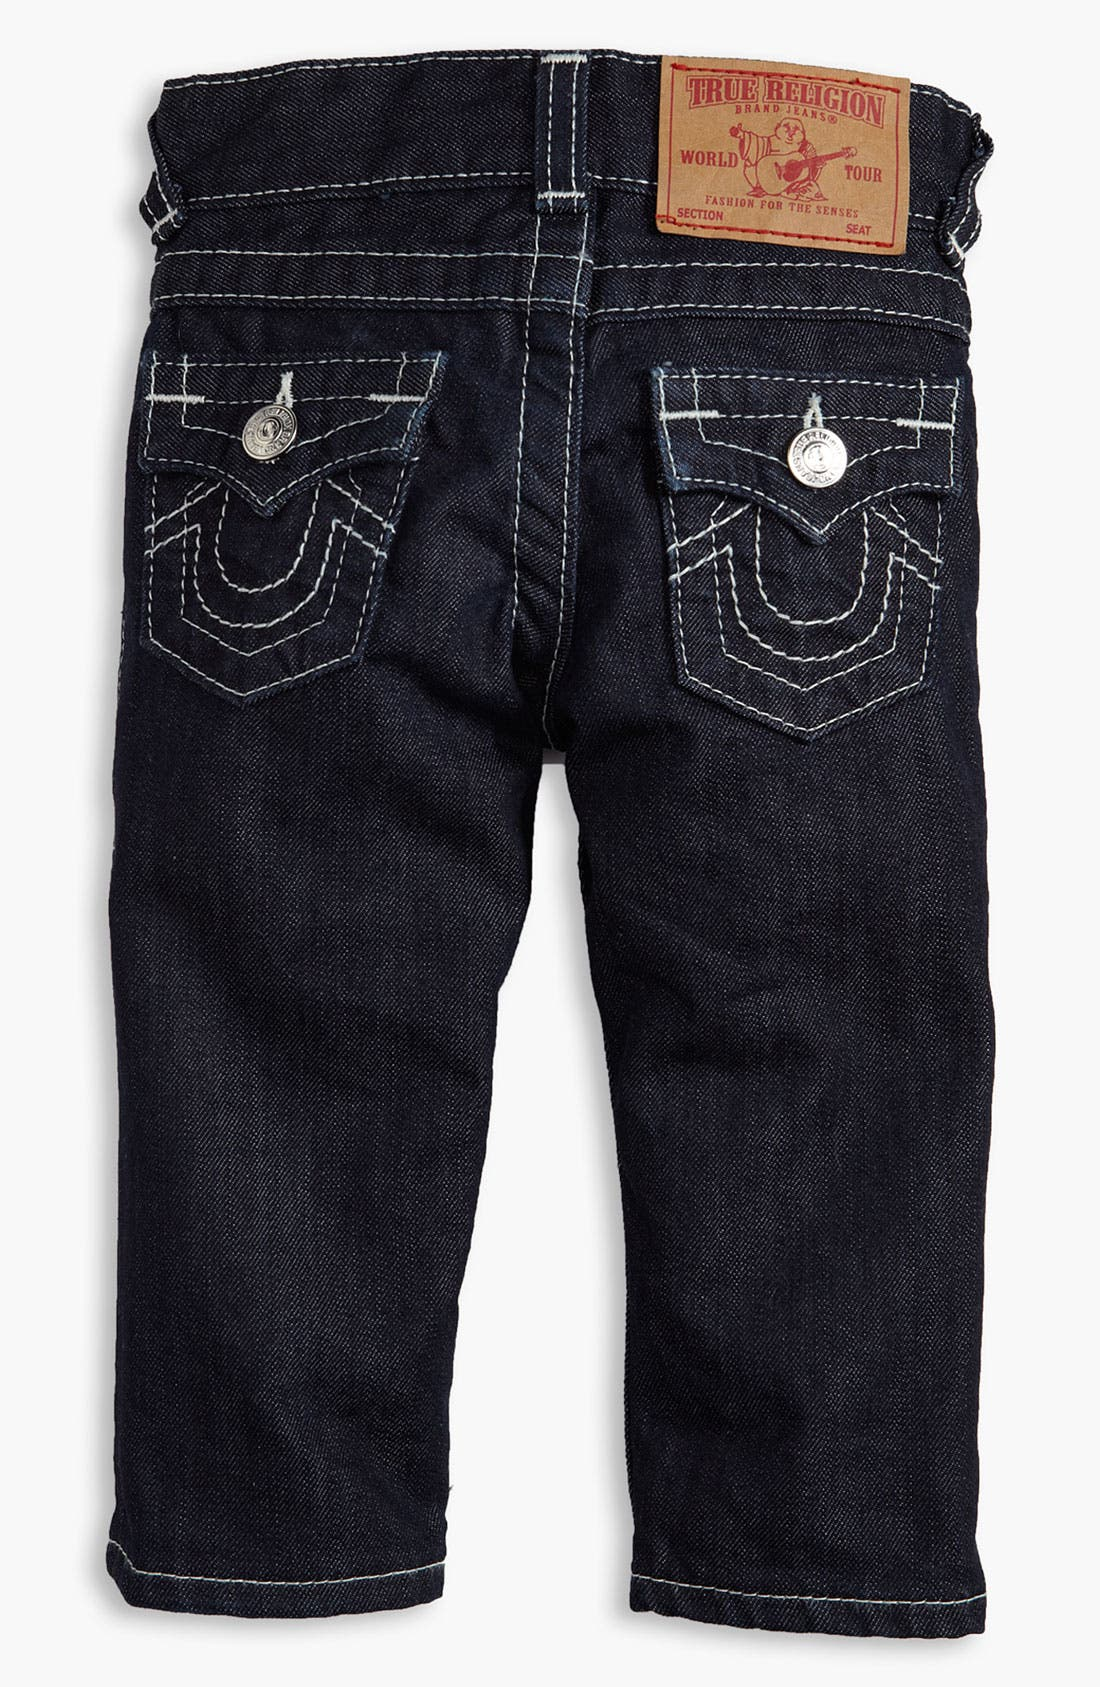 Alternate Image 1 Selected - True Religion Brand Jeans Straight Leg Jeans (Infant)